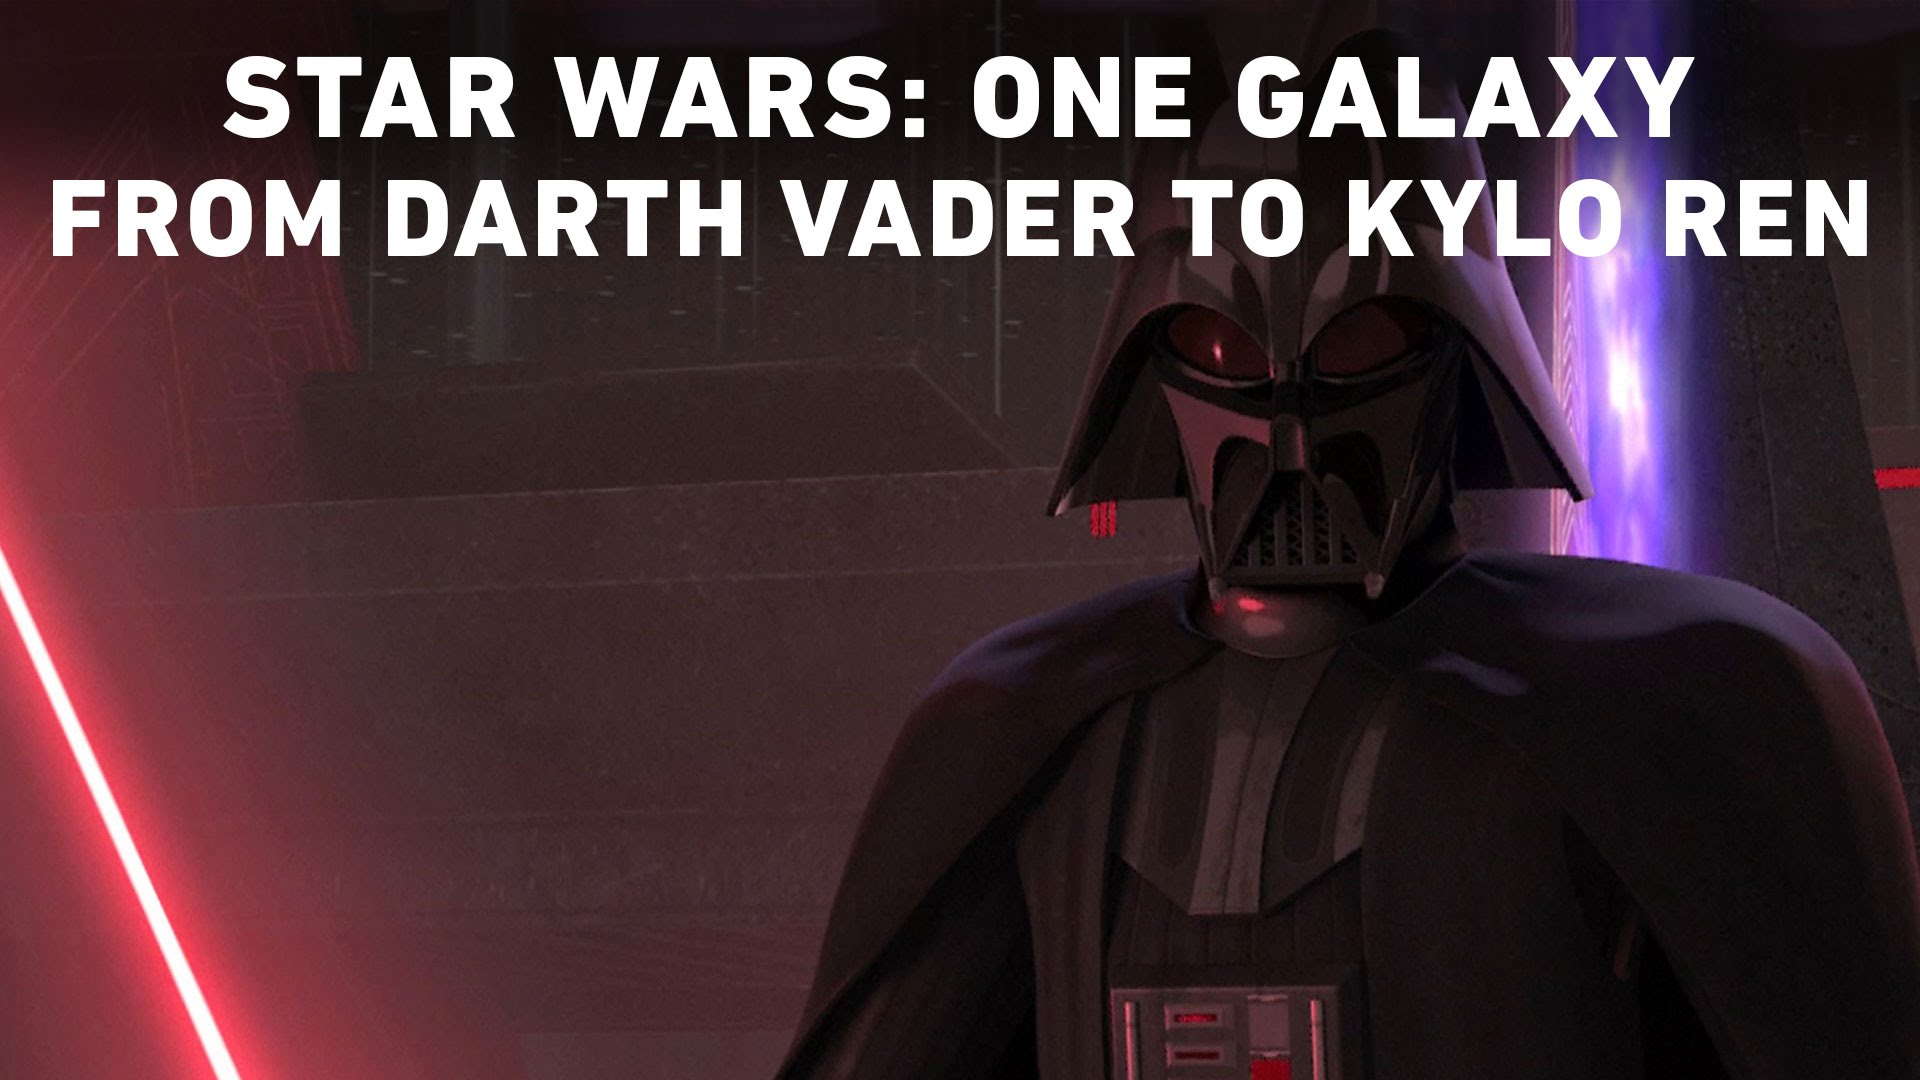 Star Wars: One Galaxy – From Darth Vader to Kylo Ren